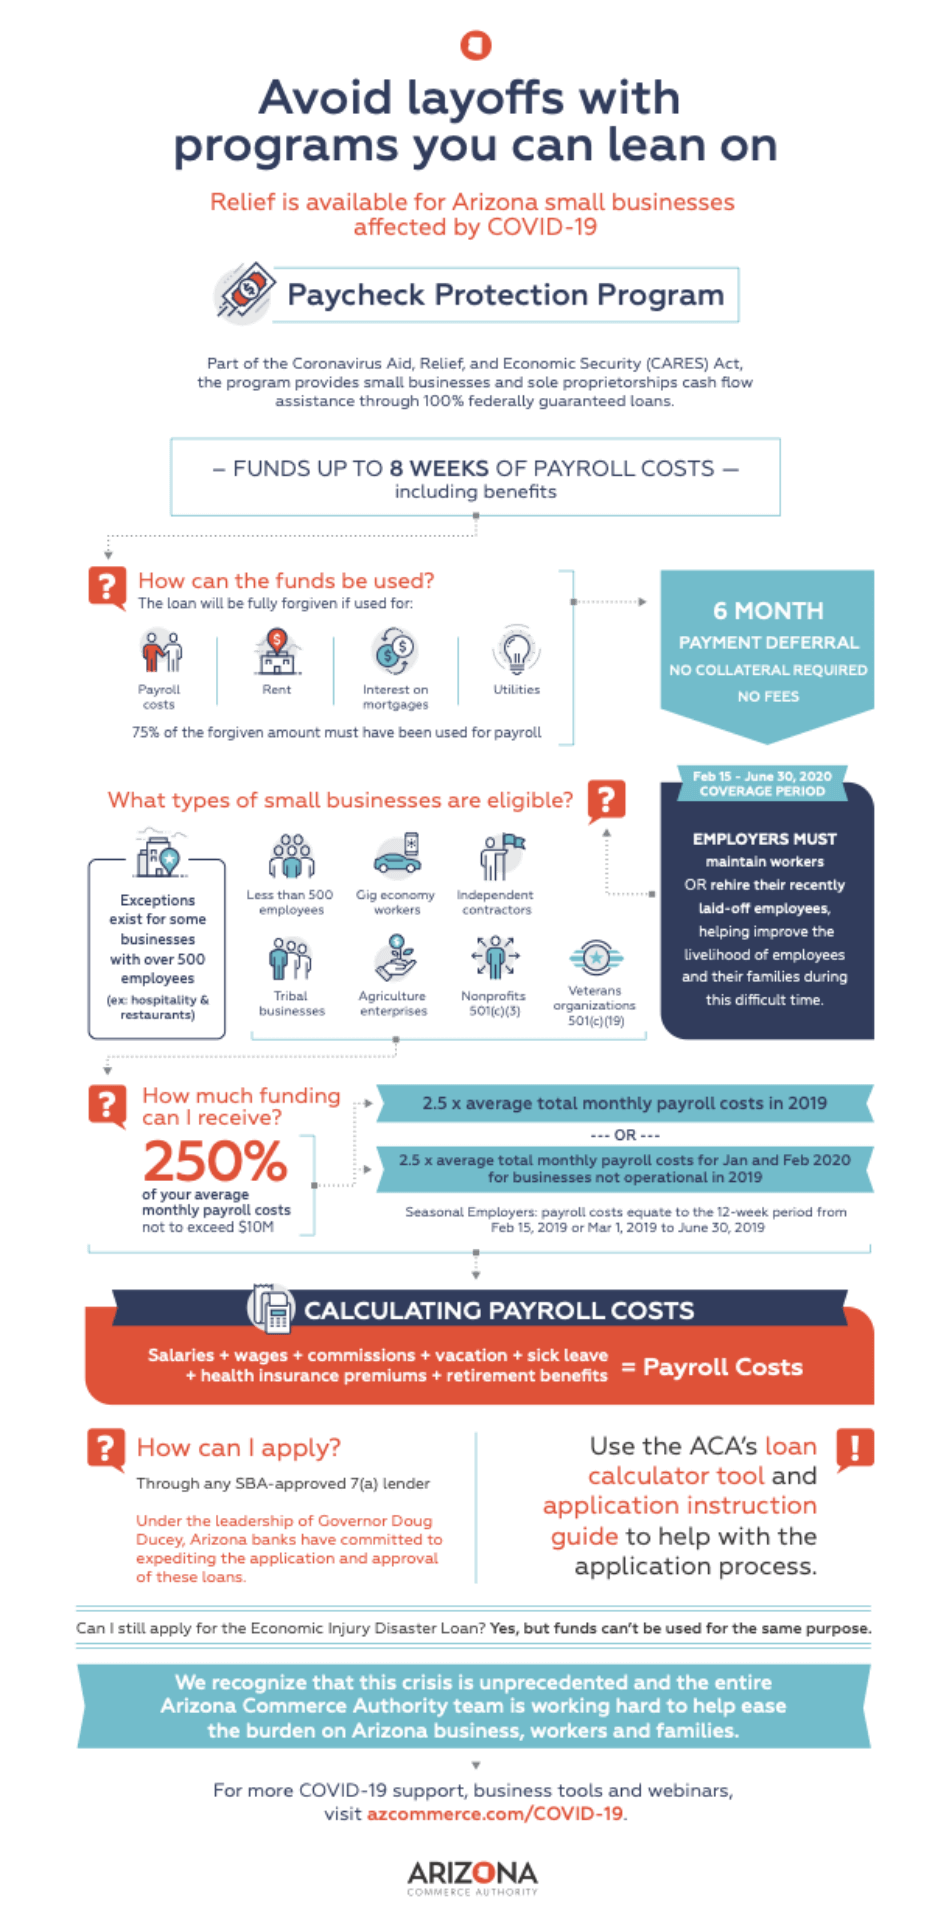 20-ACA-0431 Paycheck Protection Program Infographic_r09 Copy@2x.png